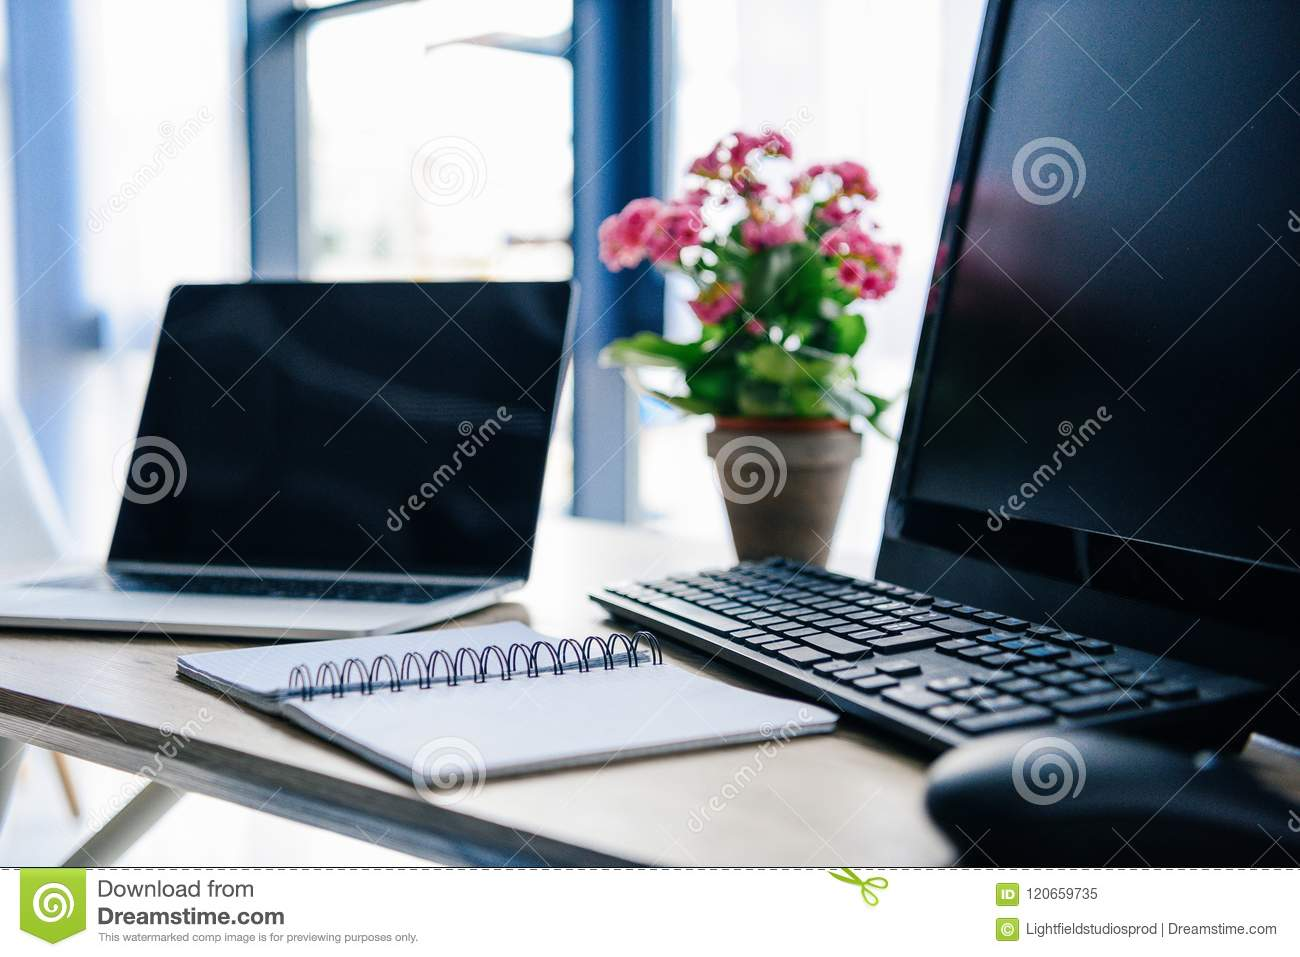 close up view of empty textbook, laptop, flowers in pot, computer, computer keyboard and computer mouse